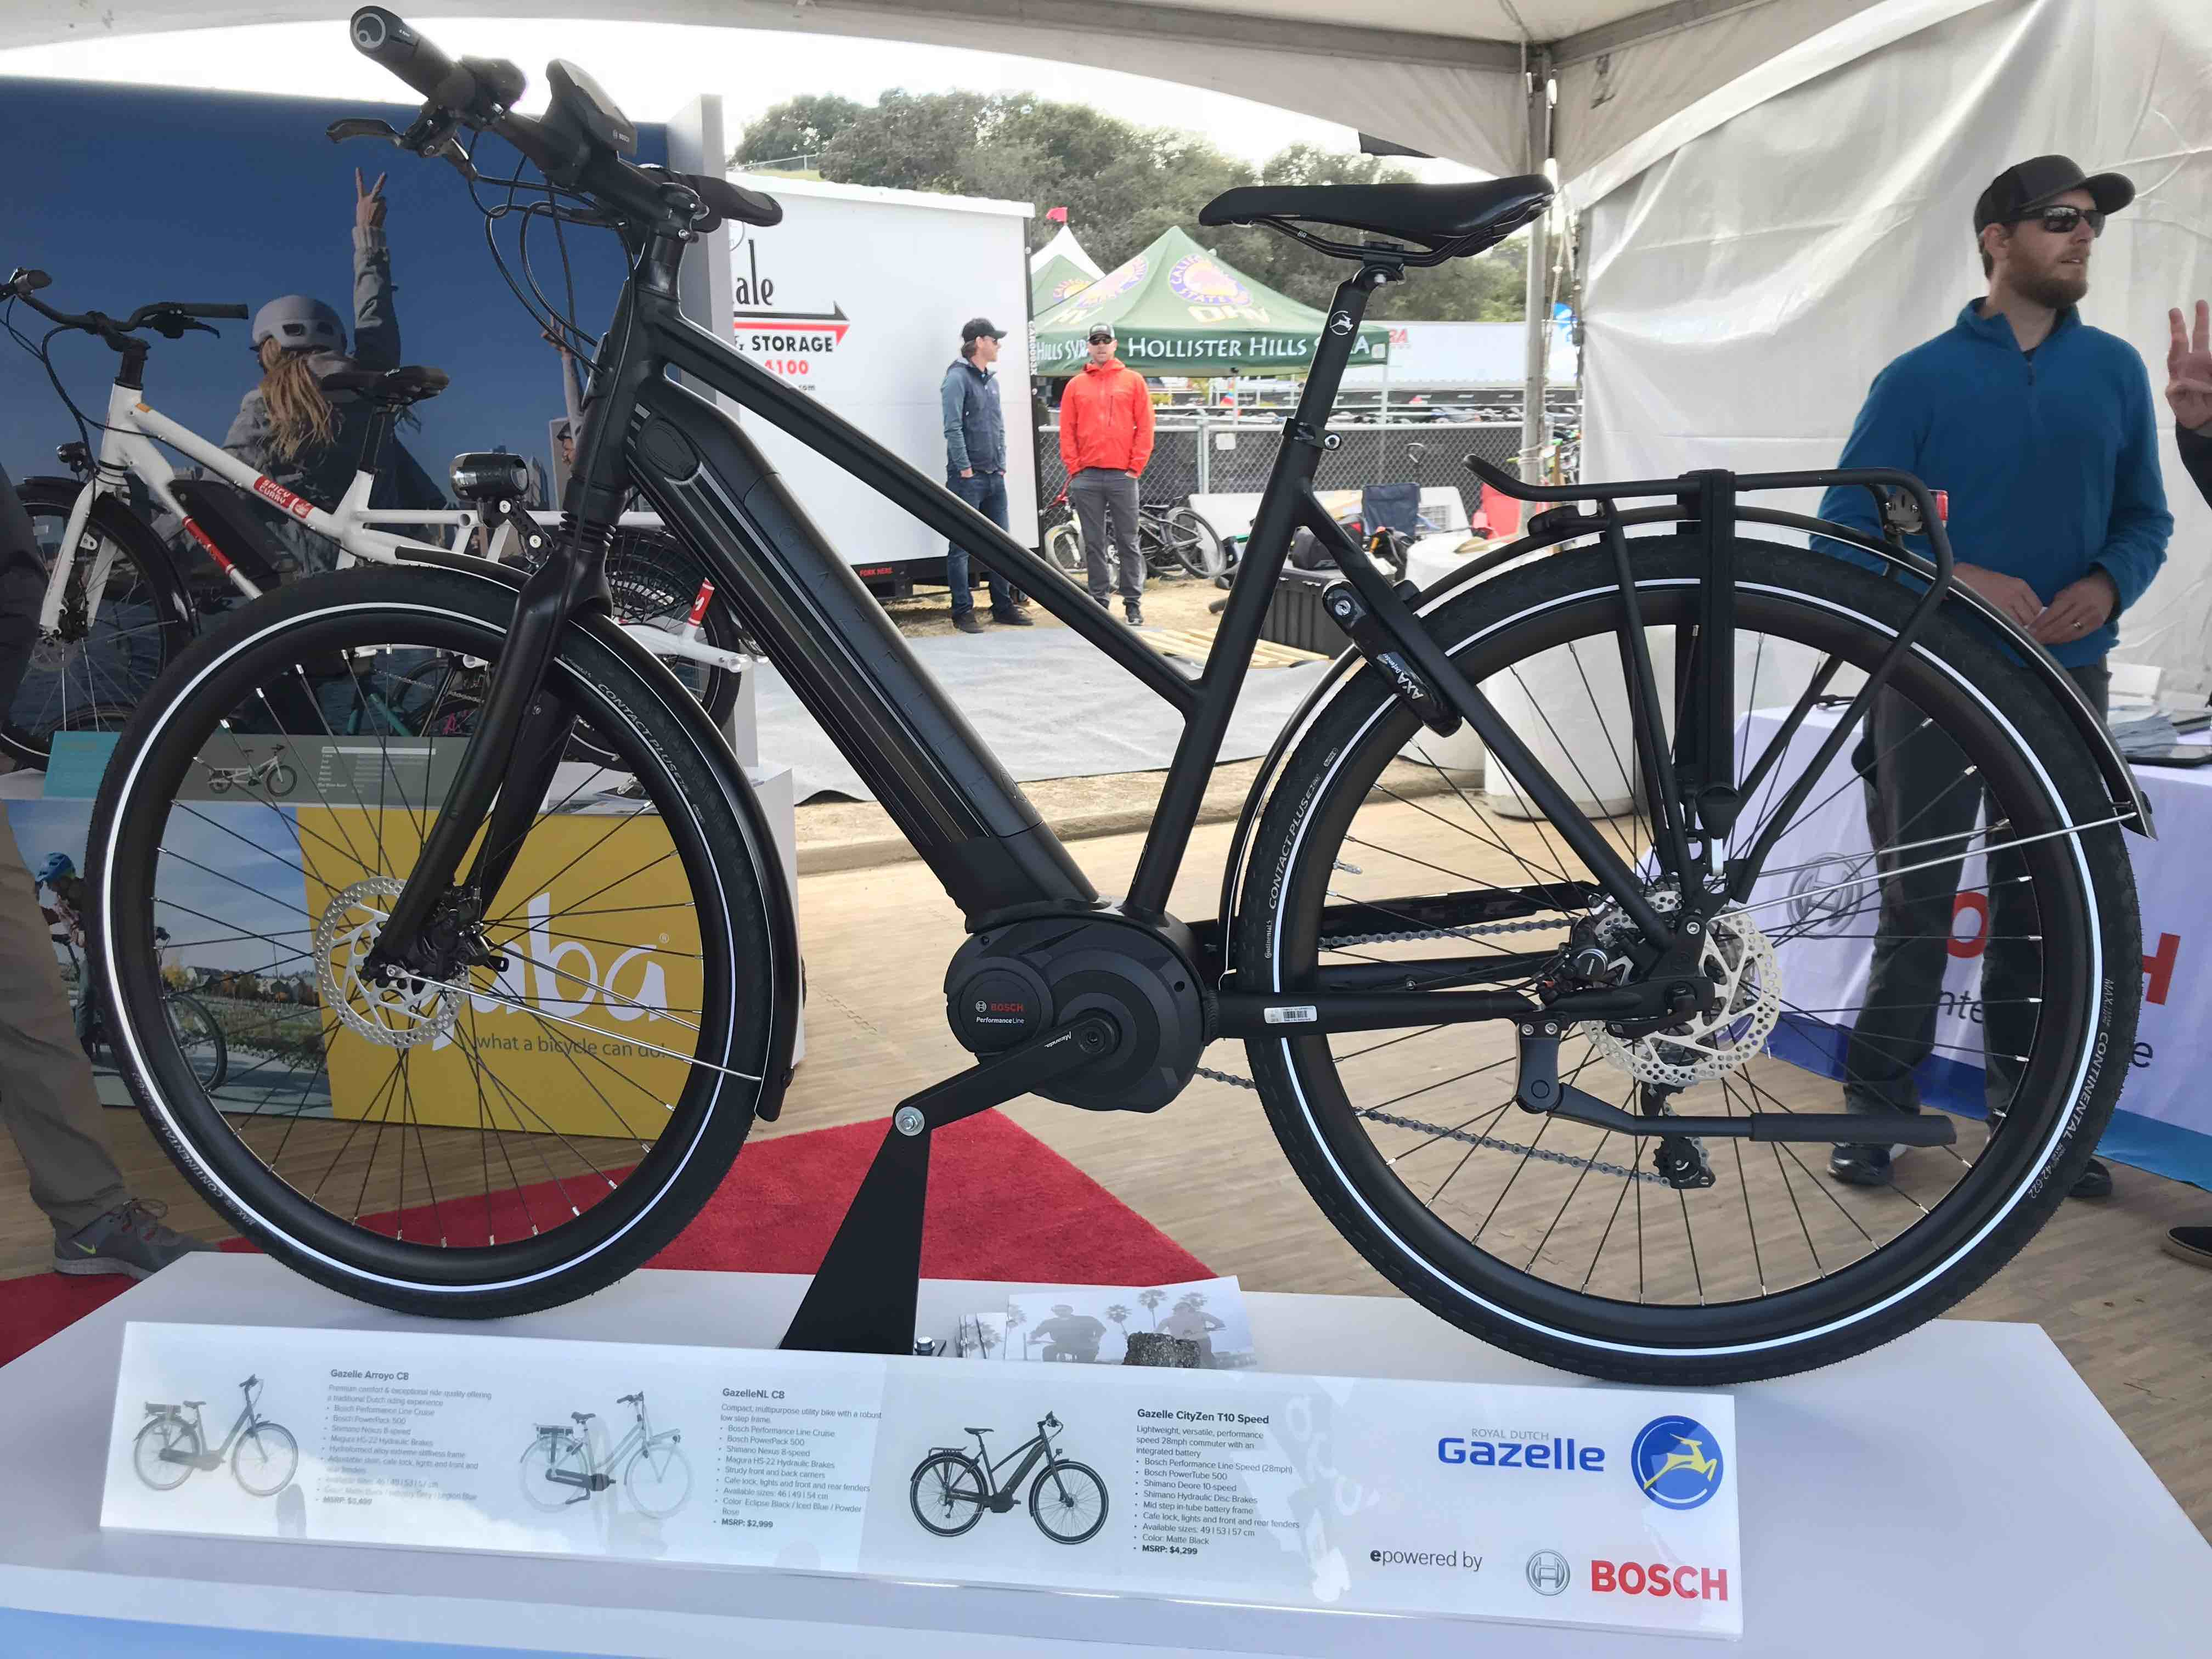 Gazelle is showing its new electric urban commuter, the CityZen, in the Bosch booth.